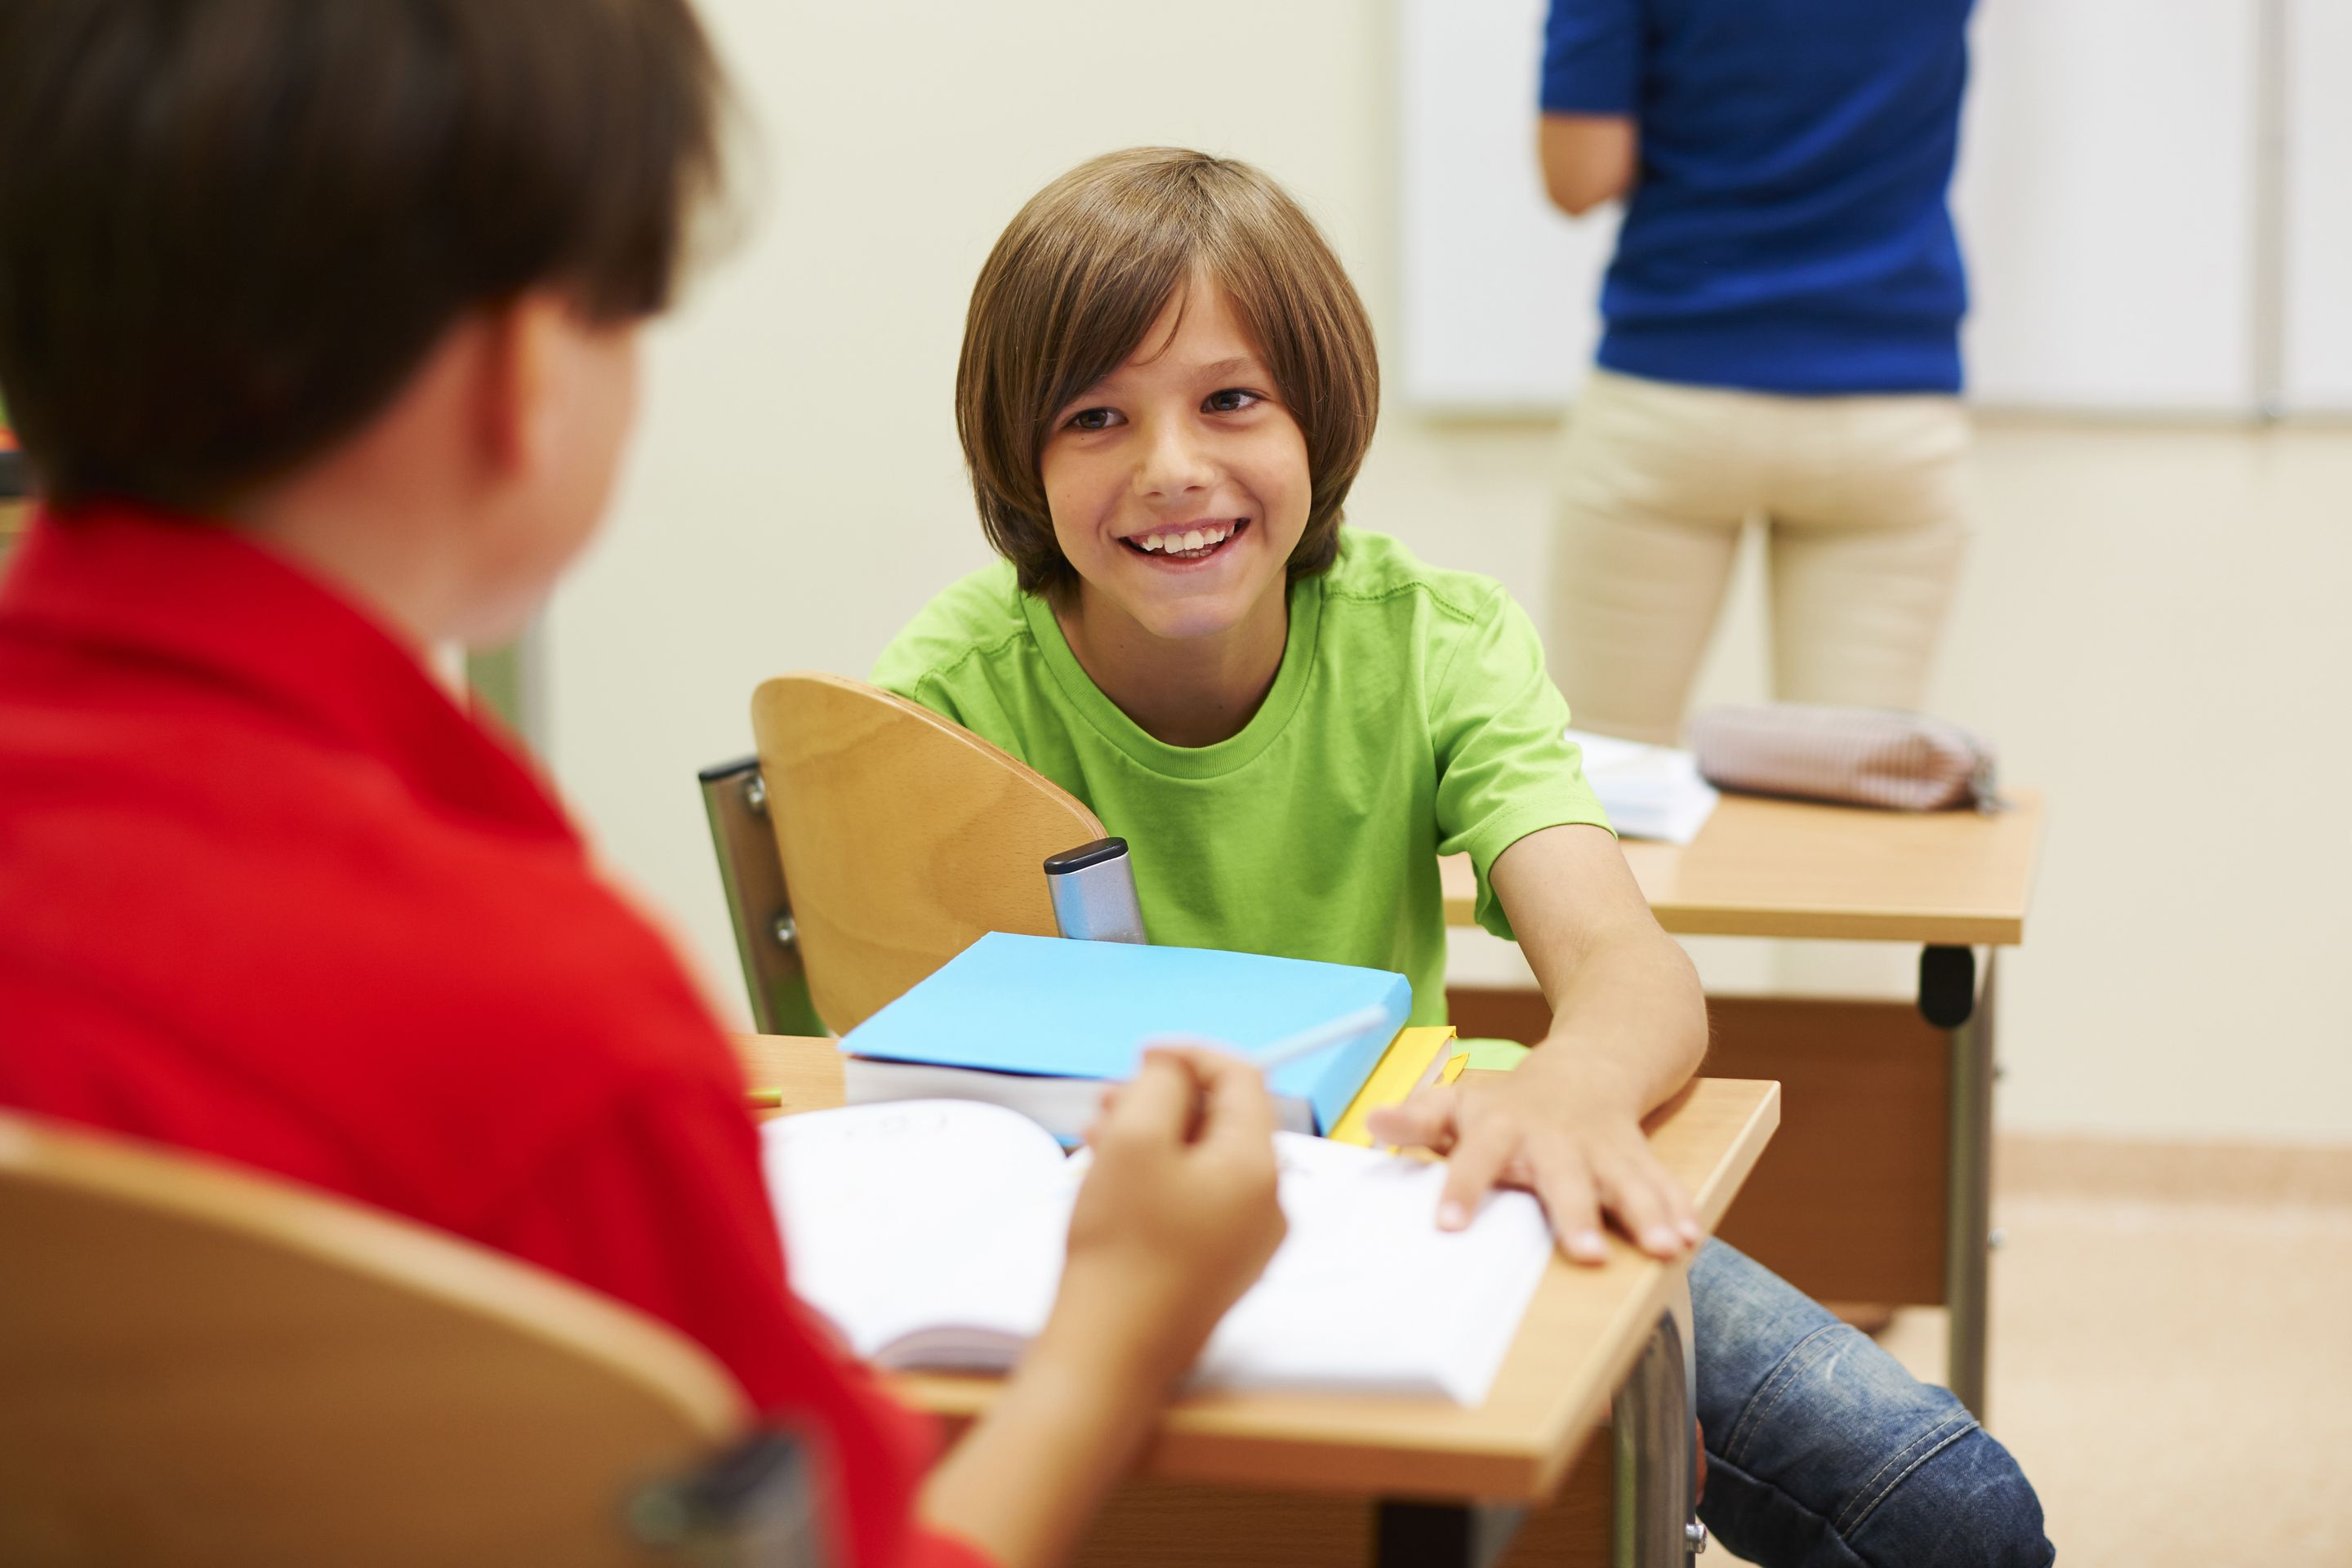 Two young boys smiling and talking with each other in a classroom